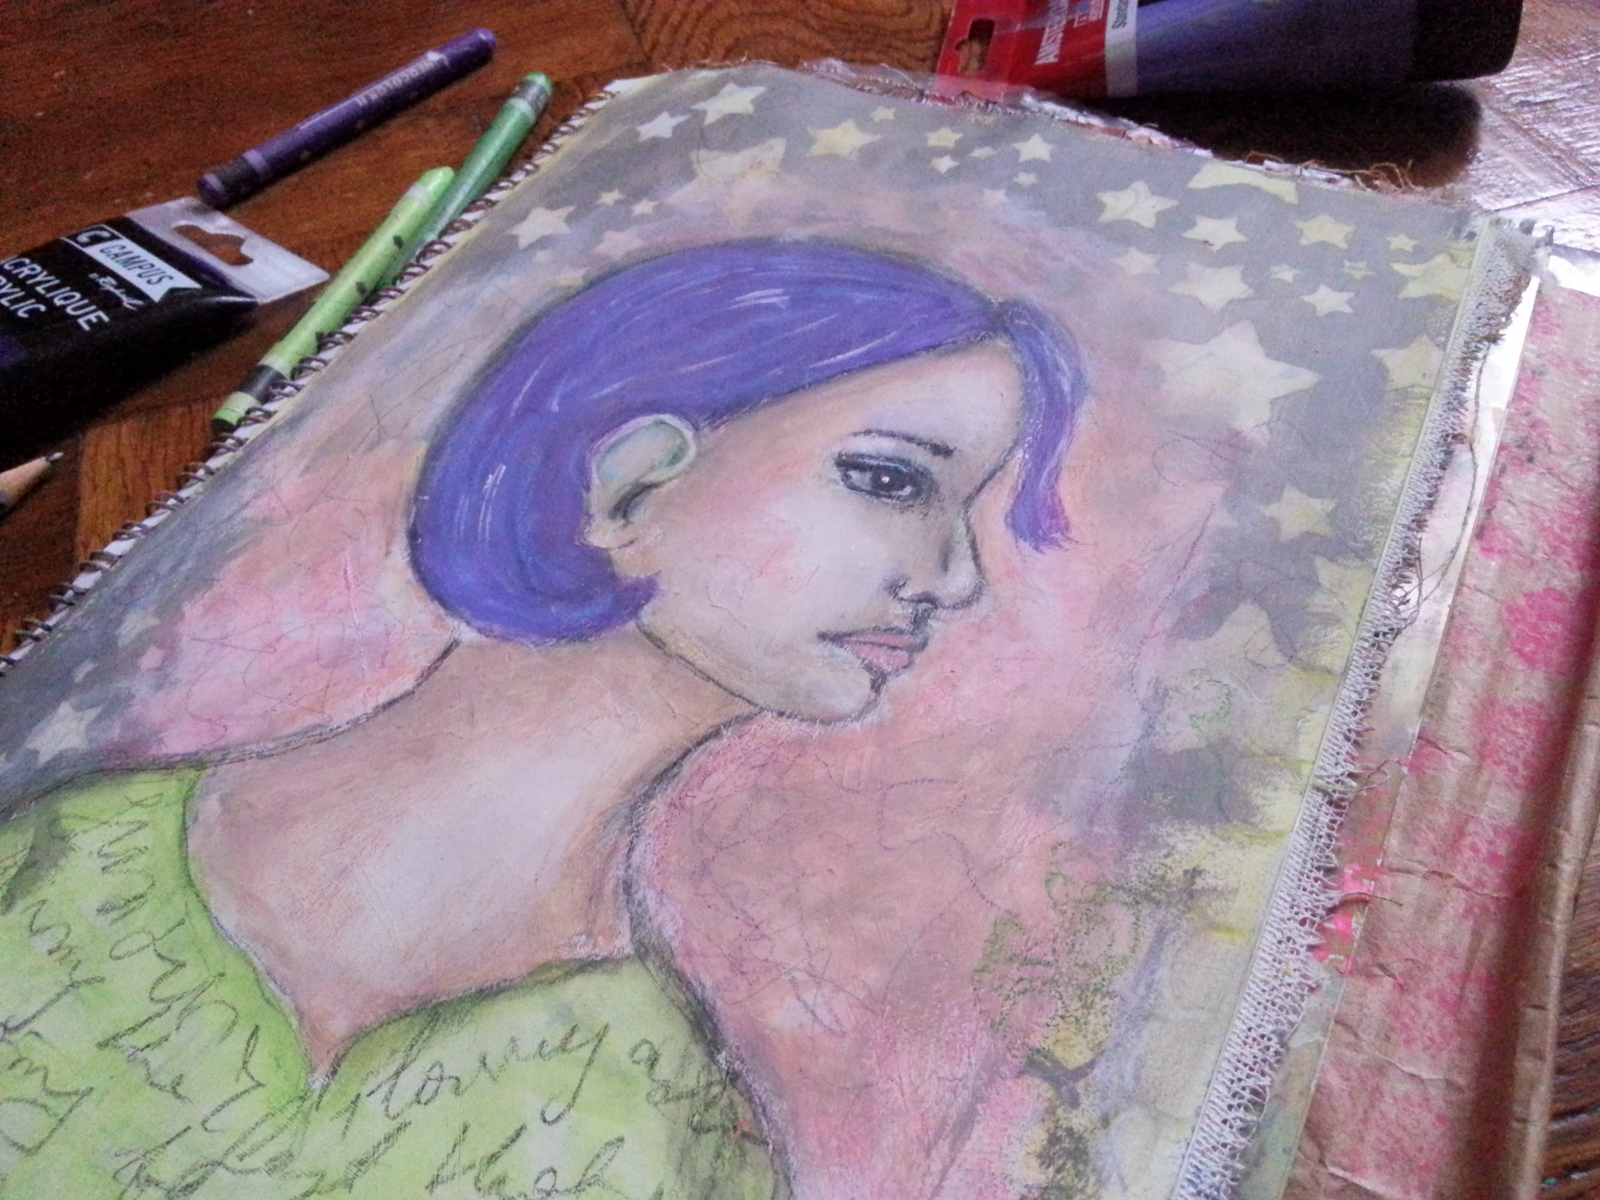 Random faces in my art journal - 15/30 portrait challenge - by Cristina Parus @ creativemag.ro